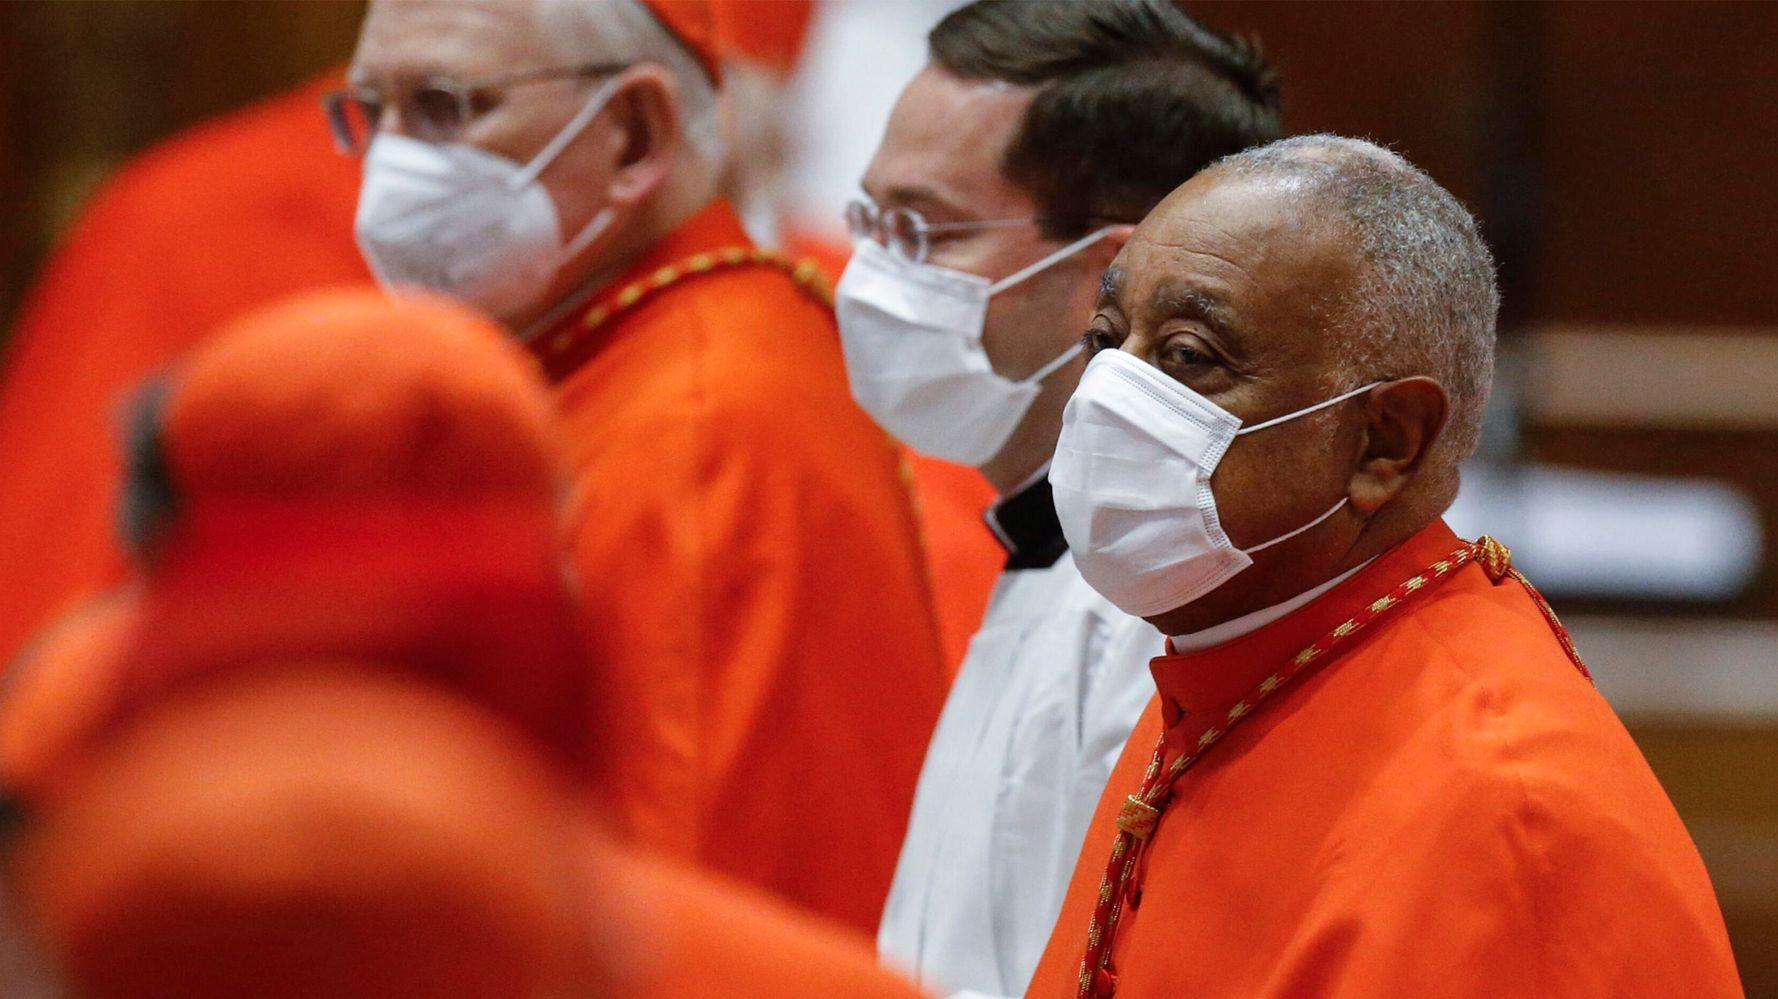 Pope To Elevate 13 New Cardinals Including First African American